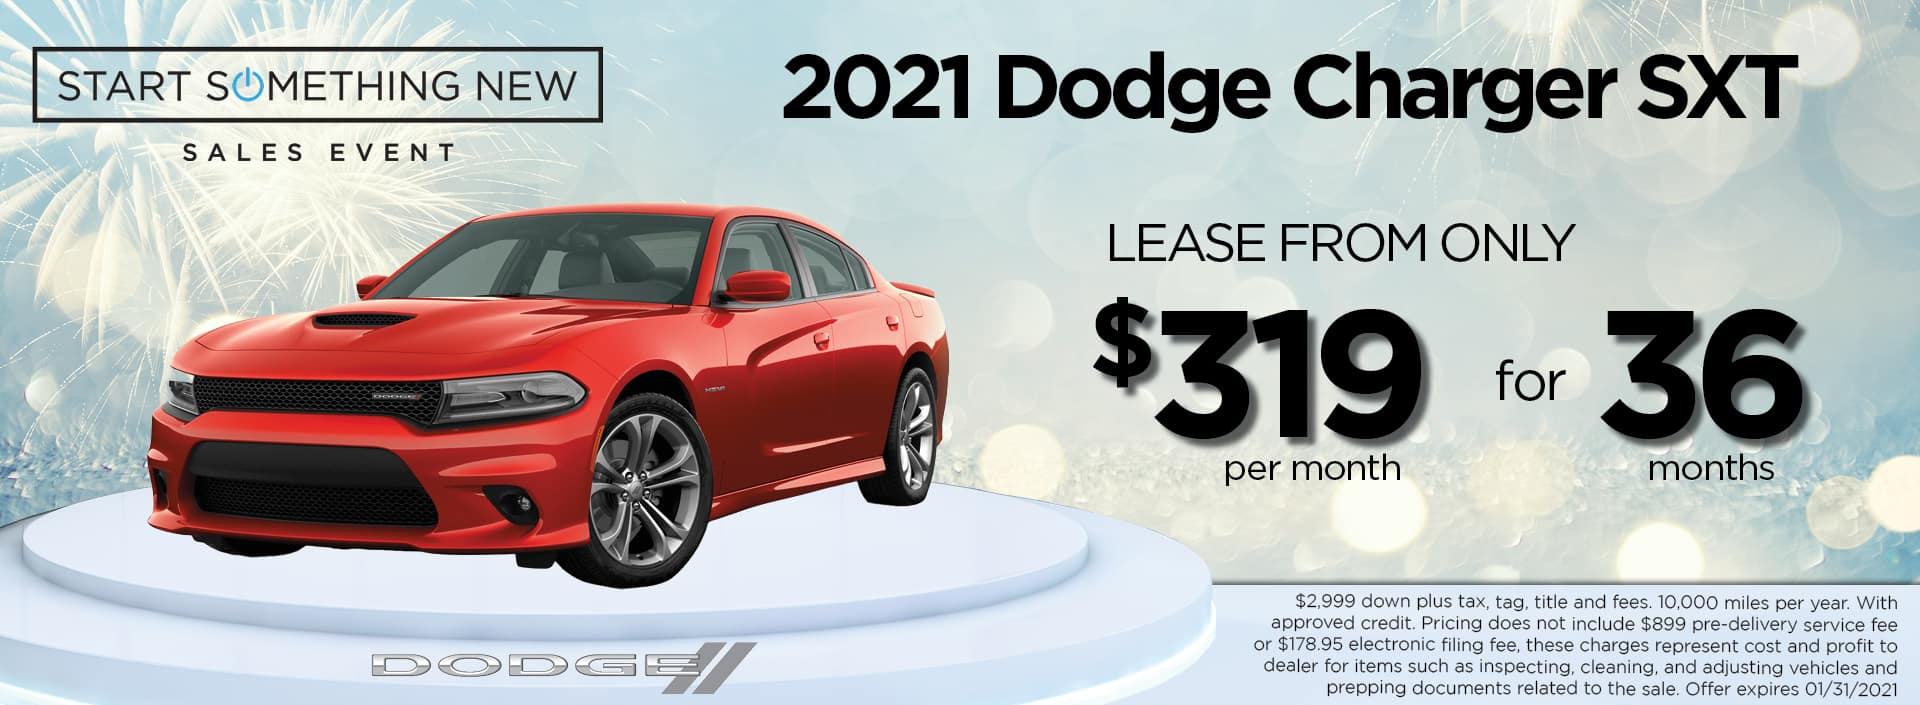 2021 Charger 319